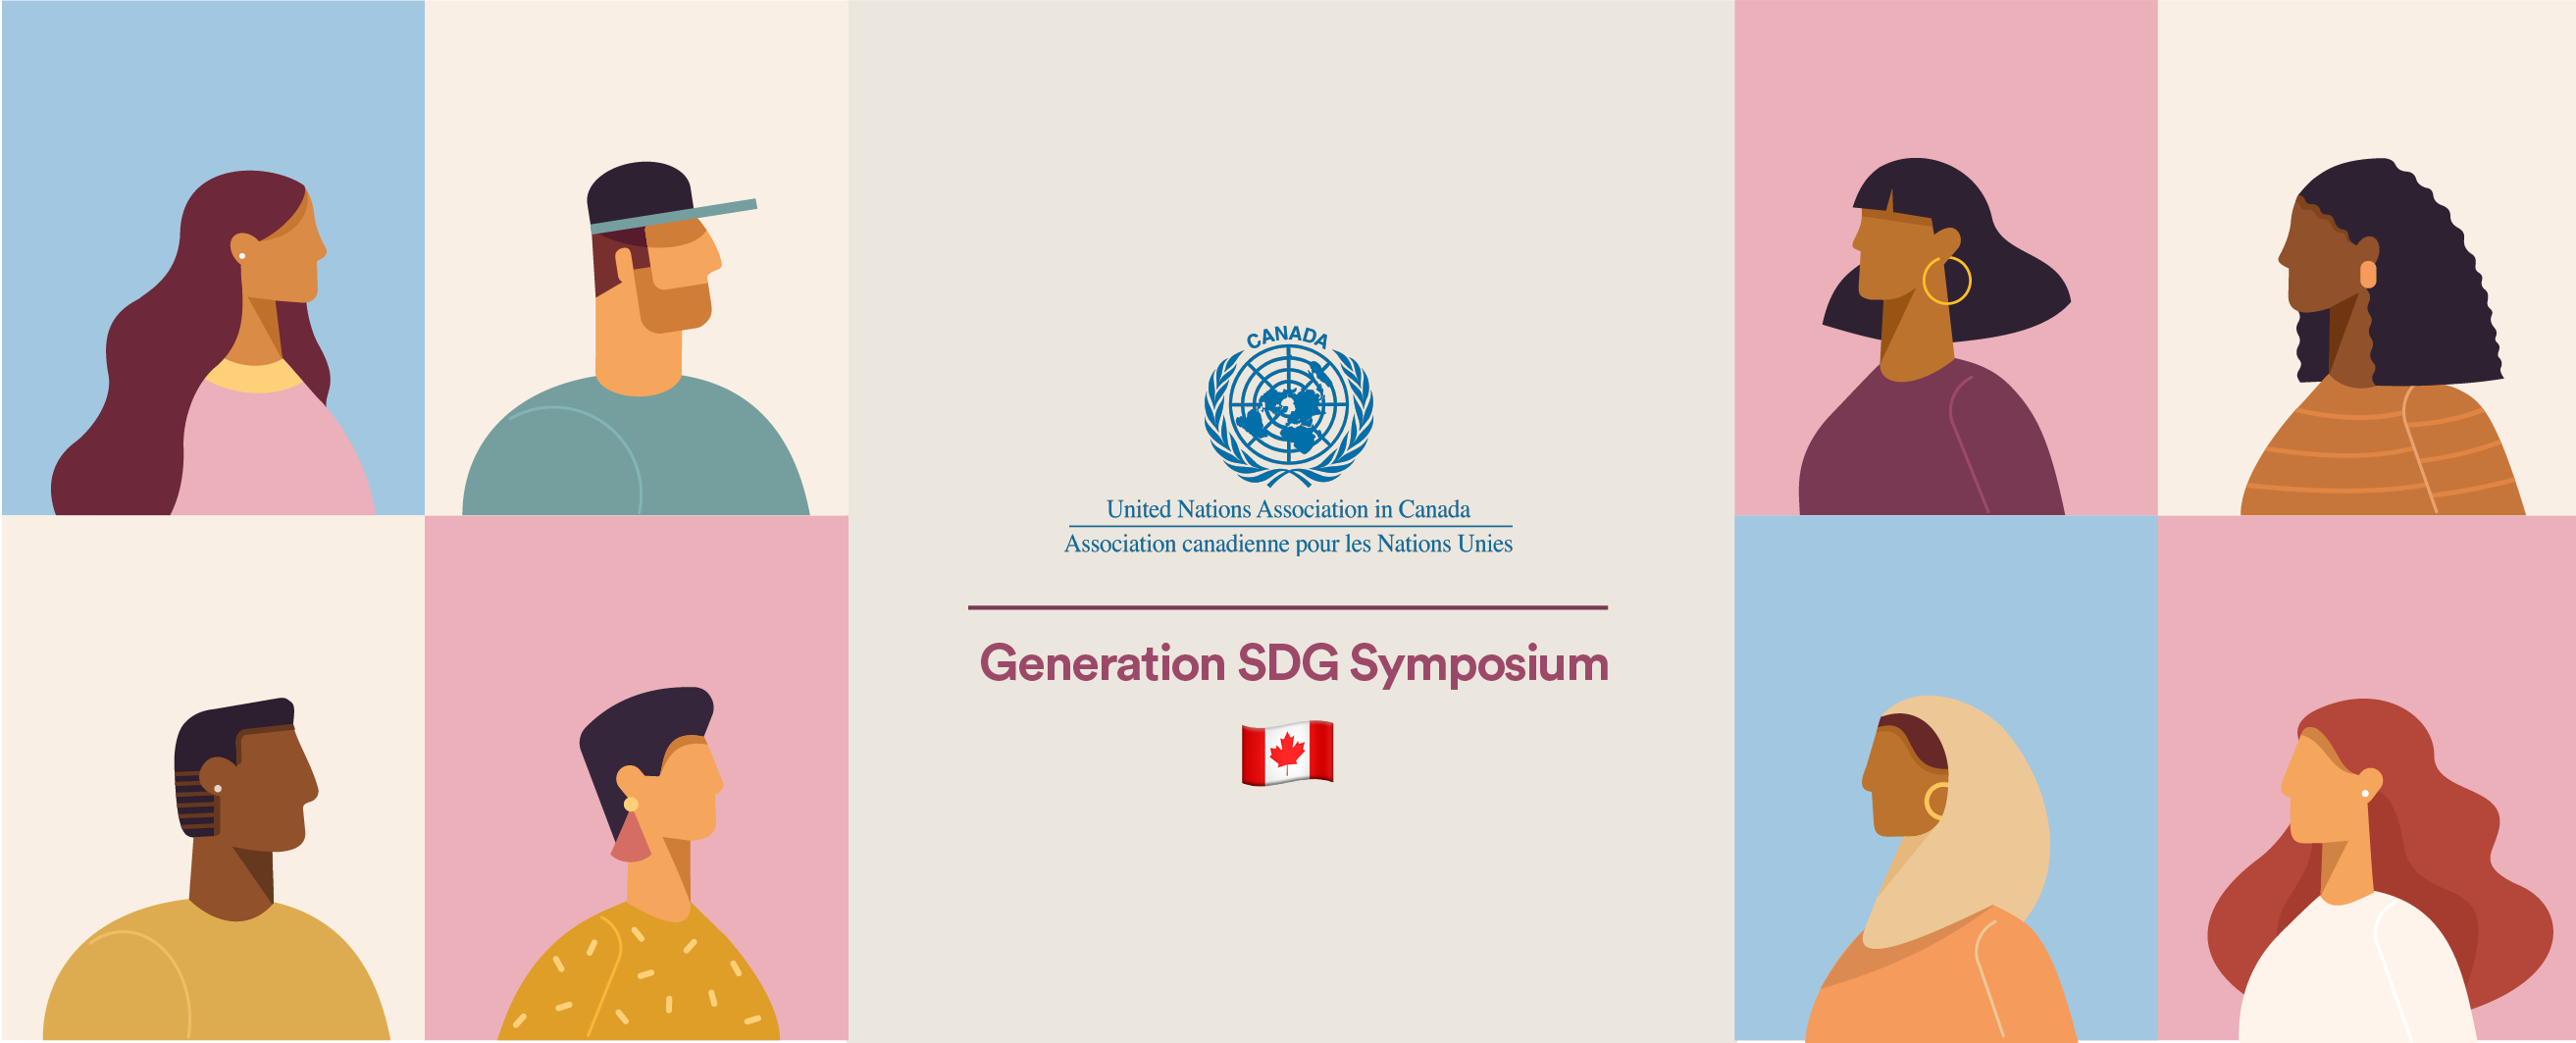 Airmeet helps 'United Nations Association in Canada' host a multifaceted event